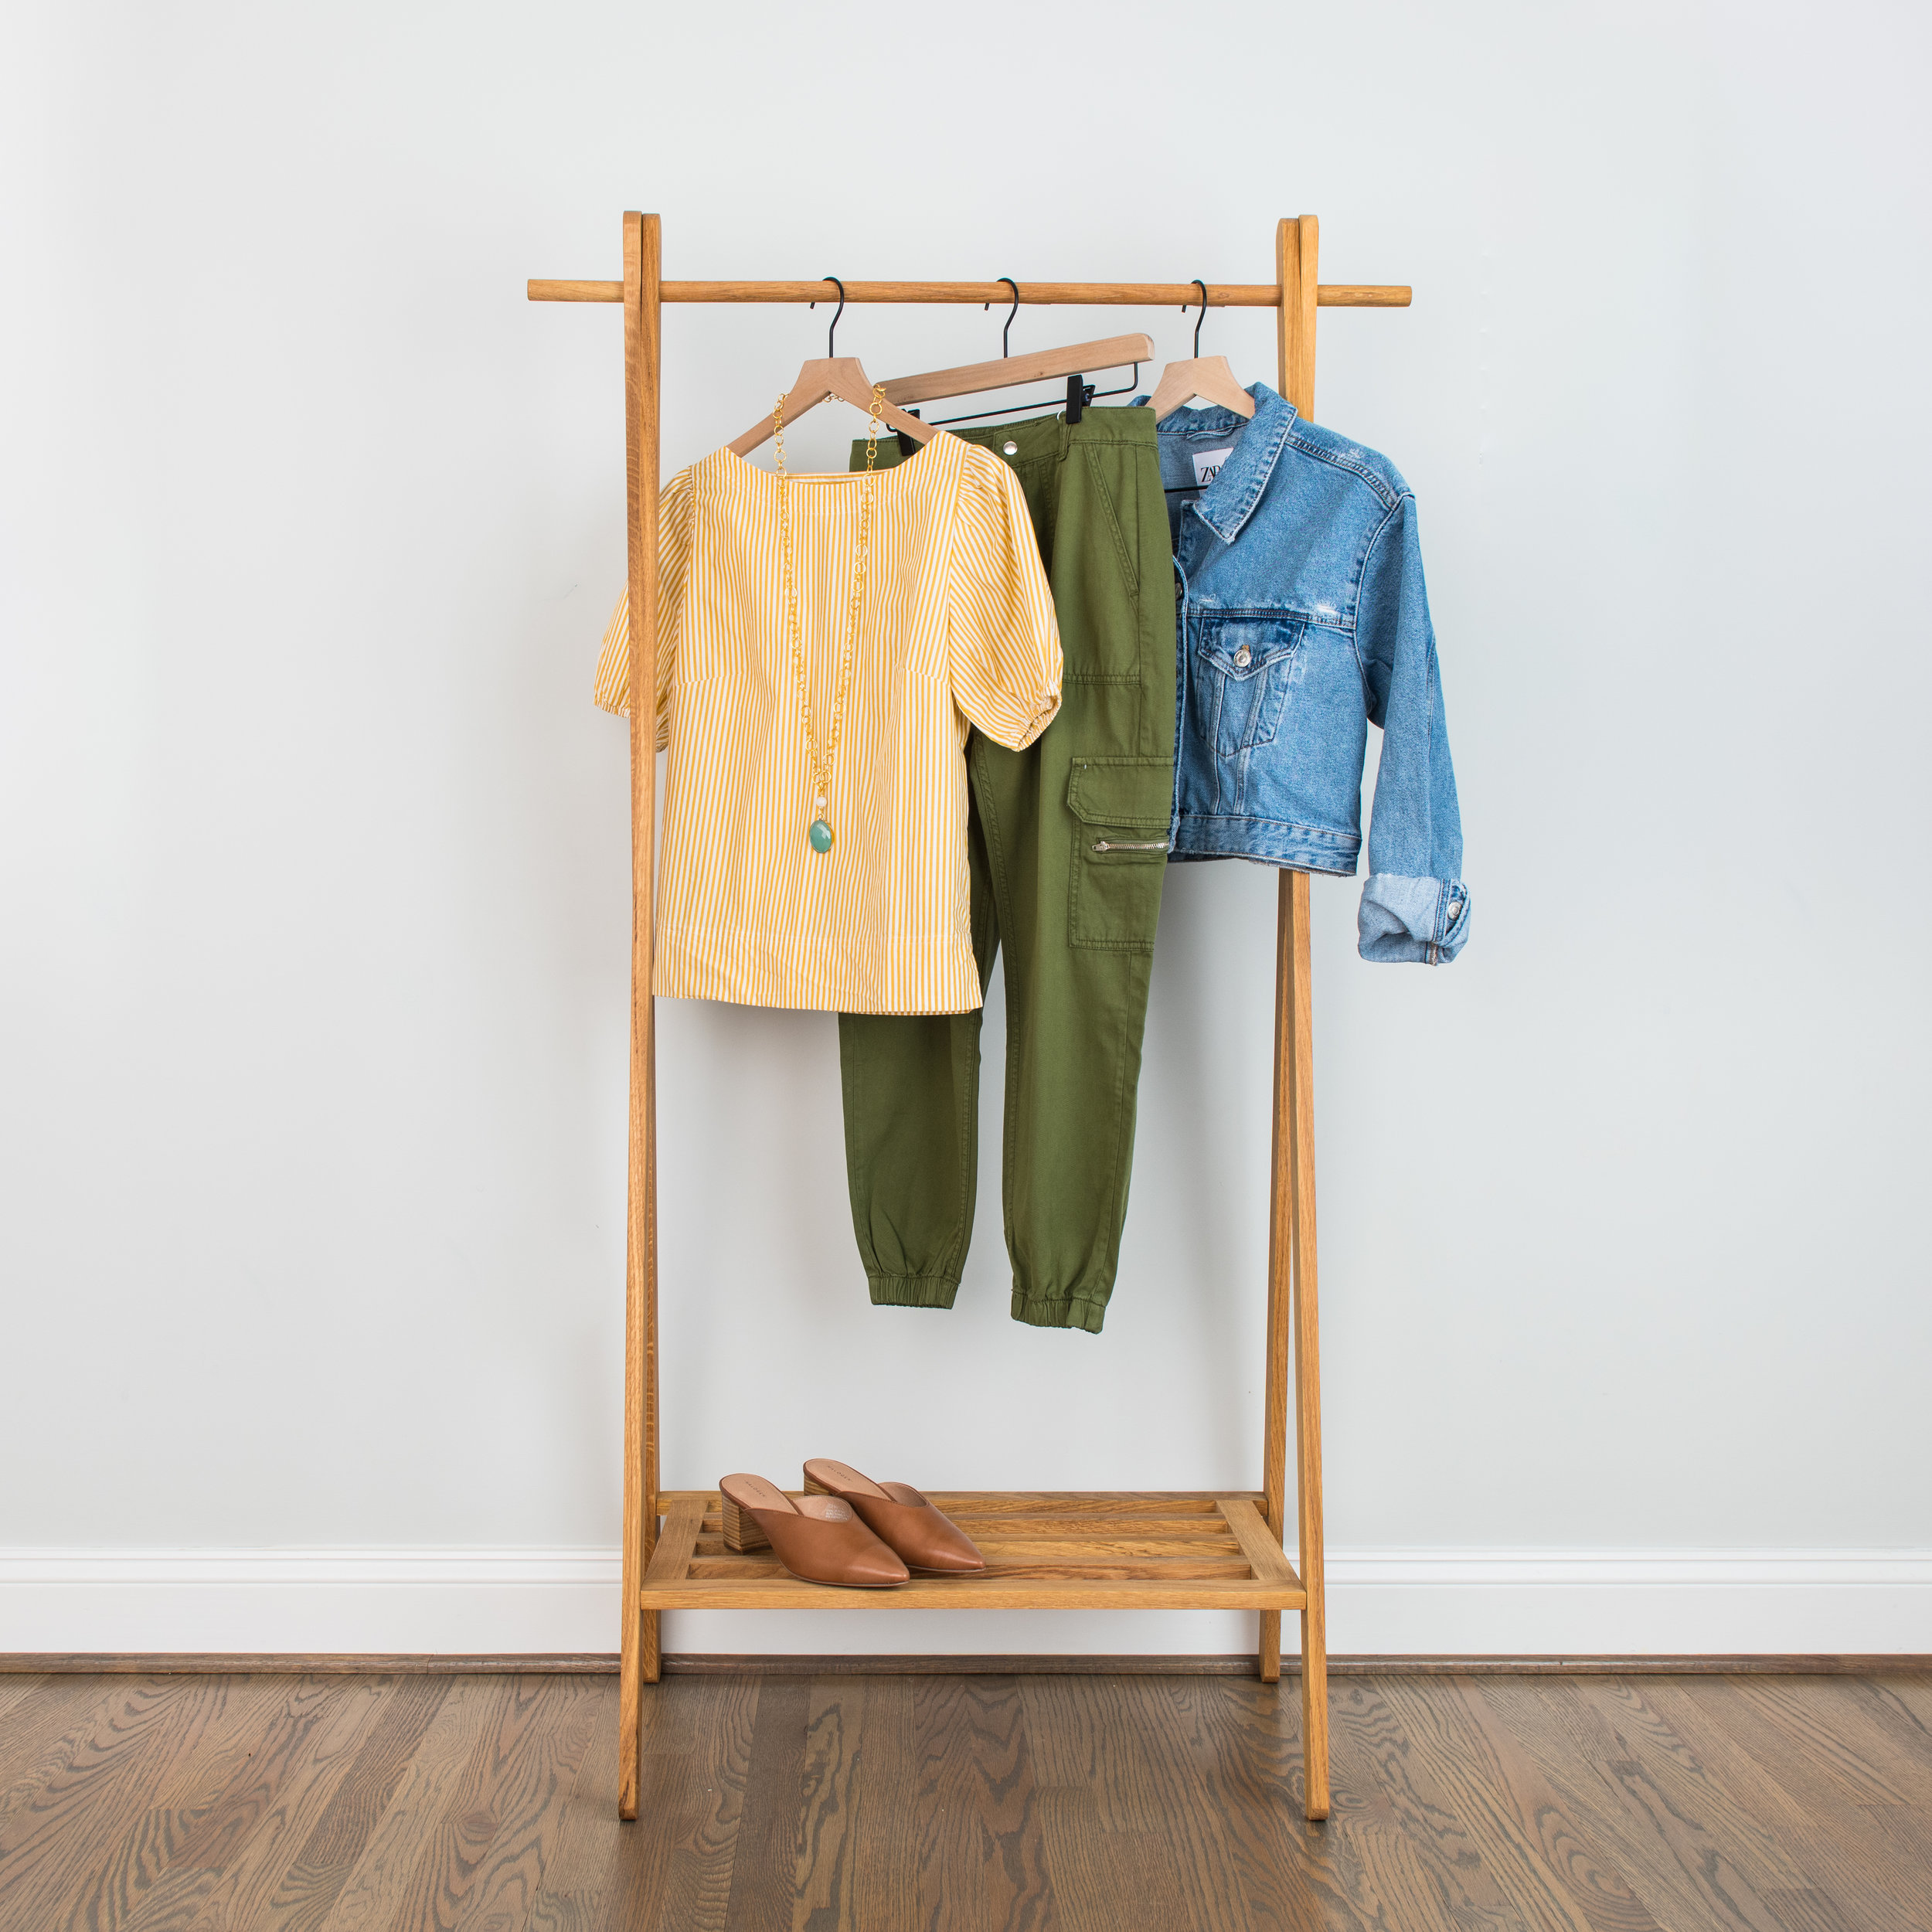 Shoulders Knees & Toes - This cargo pant look is perfect for dinner at a friend's house. The mule will give it a touch of style for any casual-ish event.Puffed Sleeve Blouse: 1 // 2 // 3Green Cargo Pants: 1 // 2 // 3Denim Jacket: 1 // 2 // 3Mules: 1 // 2 // 3Green Necklace: 1 // 2 // 3